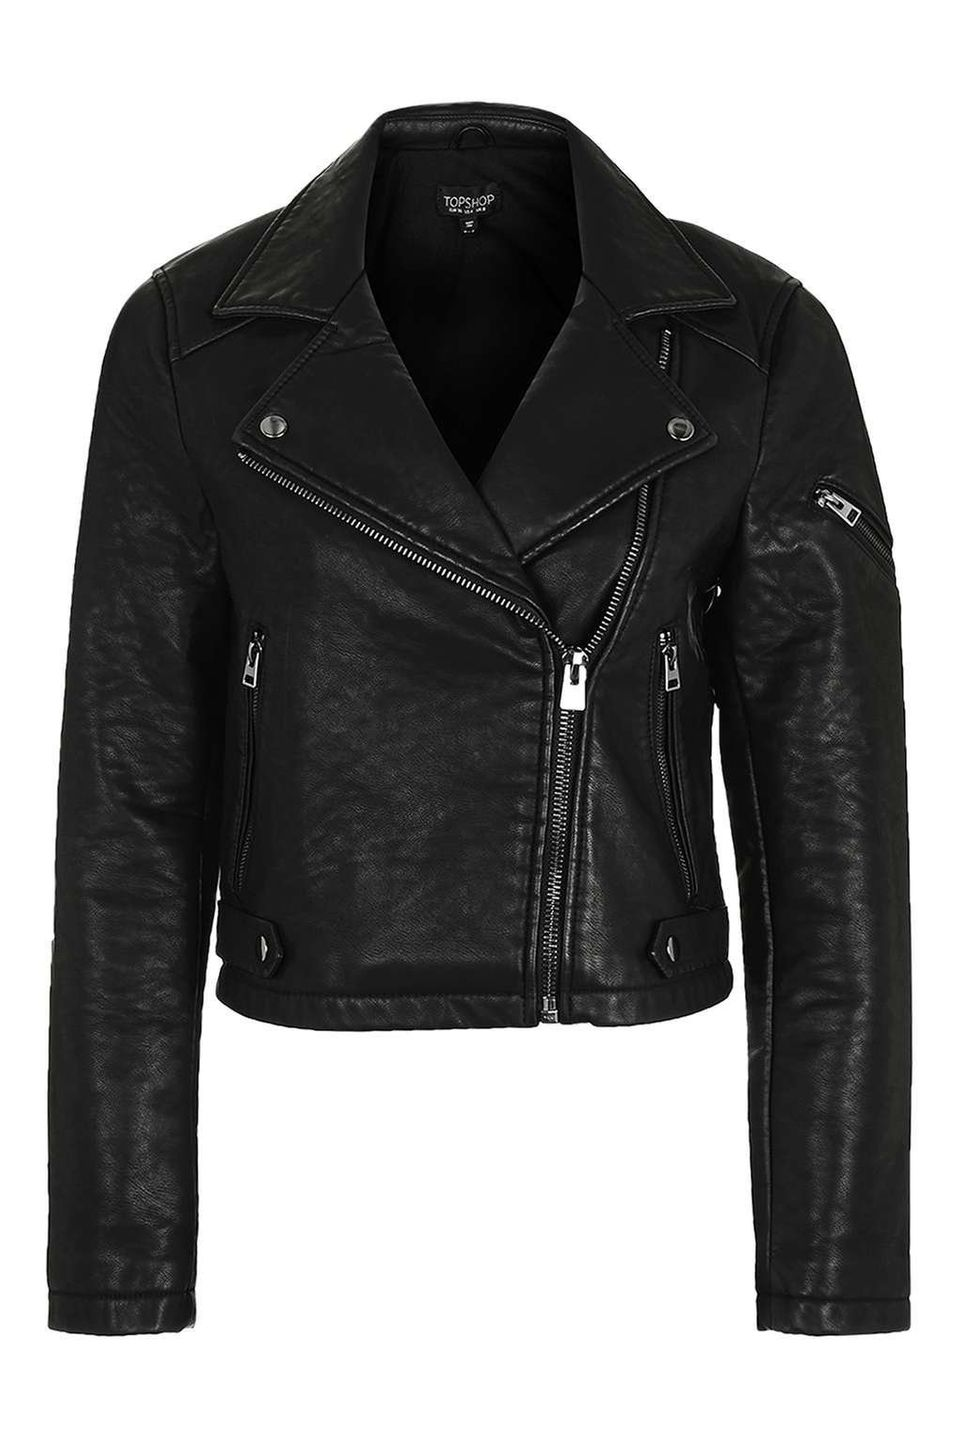 "<a href=""http://us.topshop.com/en/tsus/product/faux-leather-biker-jacket-5845385"" target=""_blank"">Topshop</a> Faux Leather Bi"